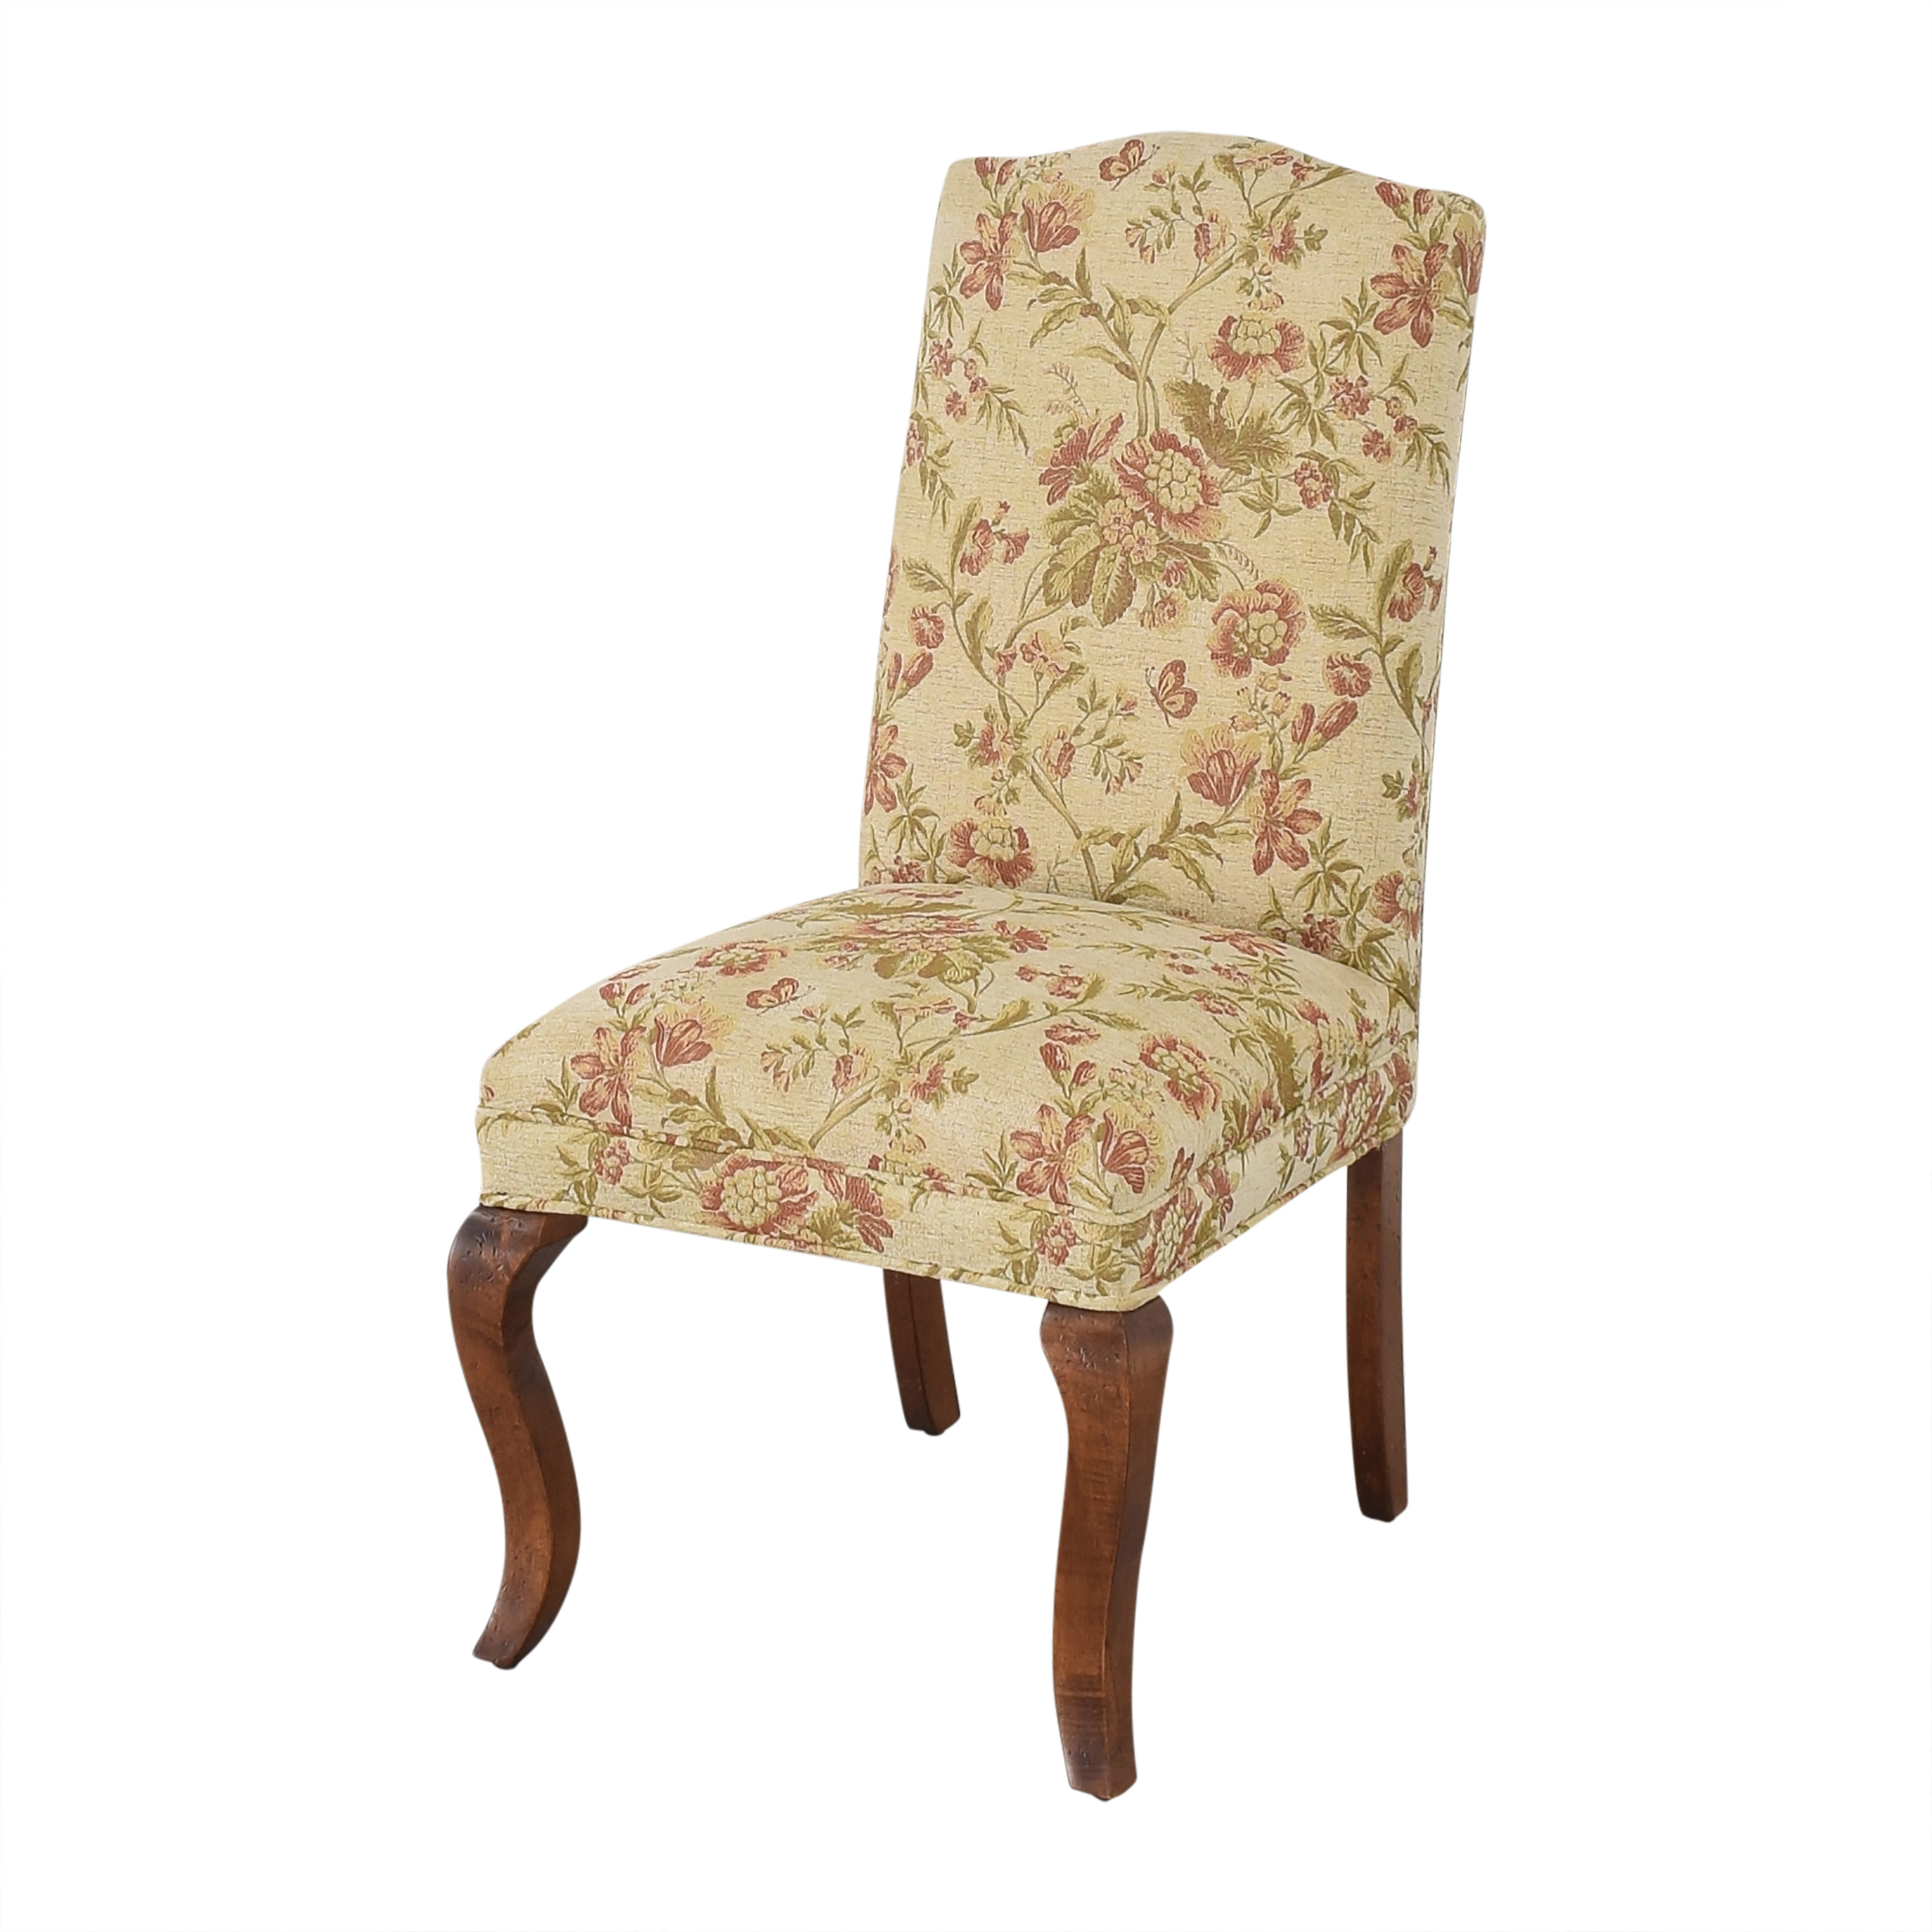 Queen Anne Upholstered Dining Chairs dimensions